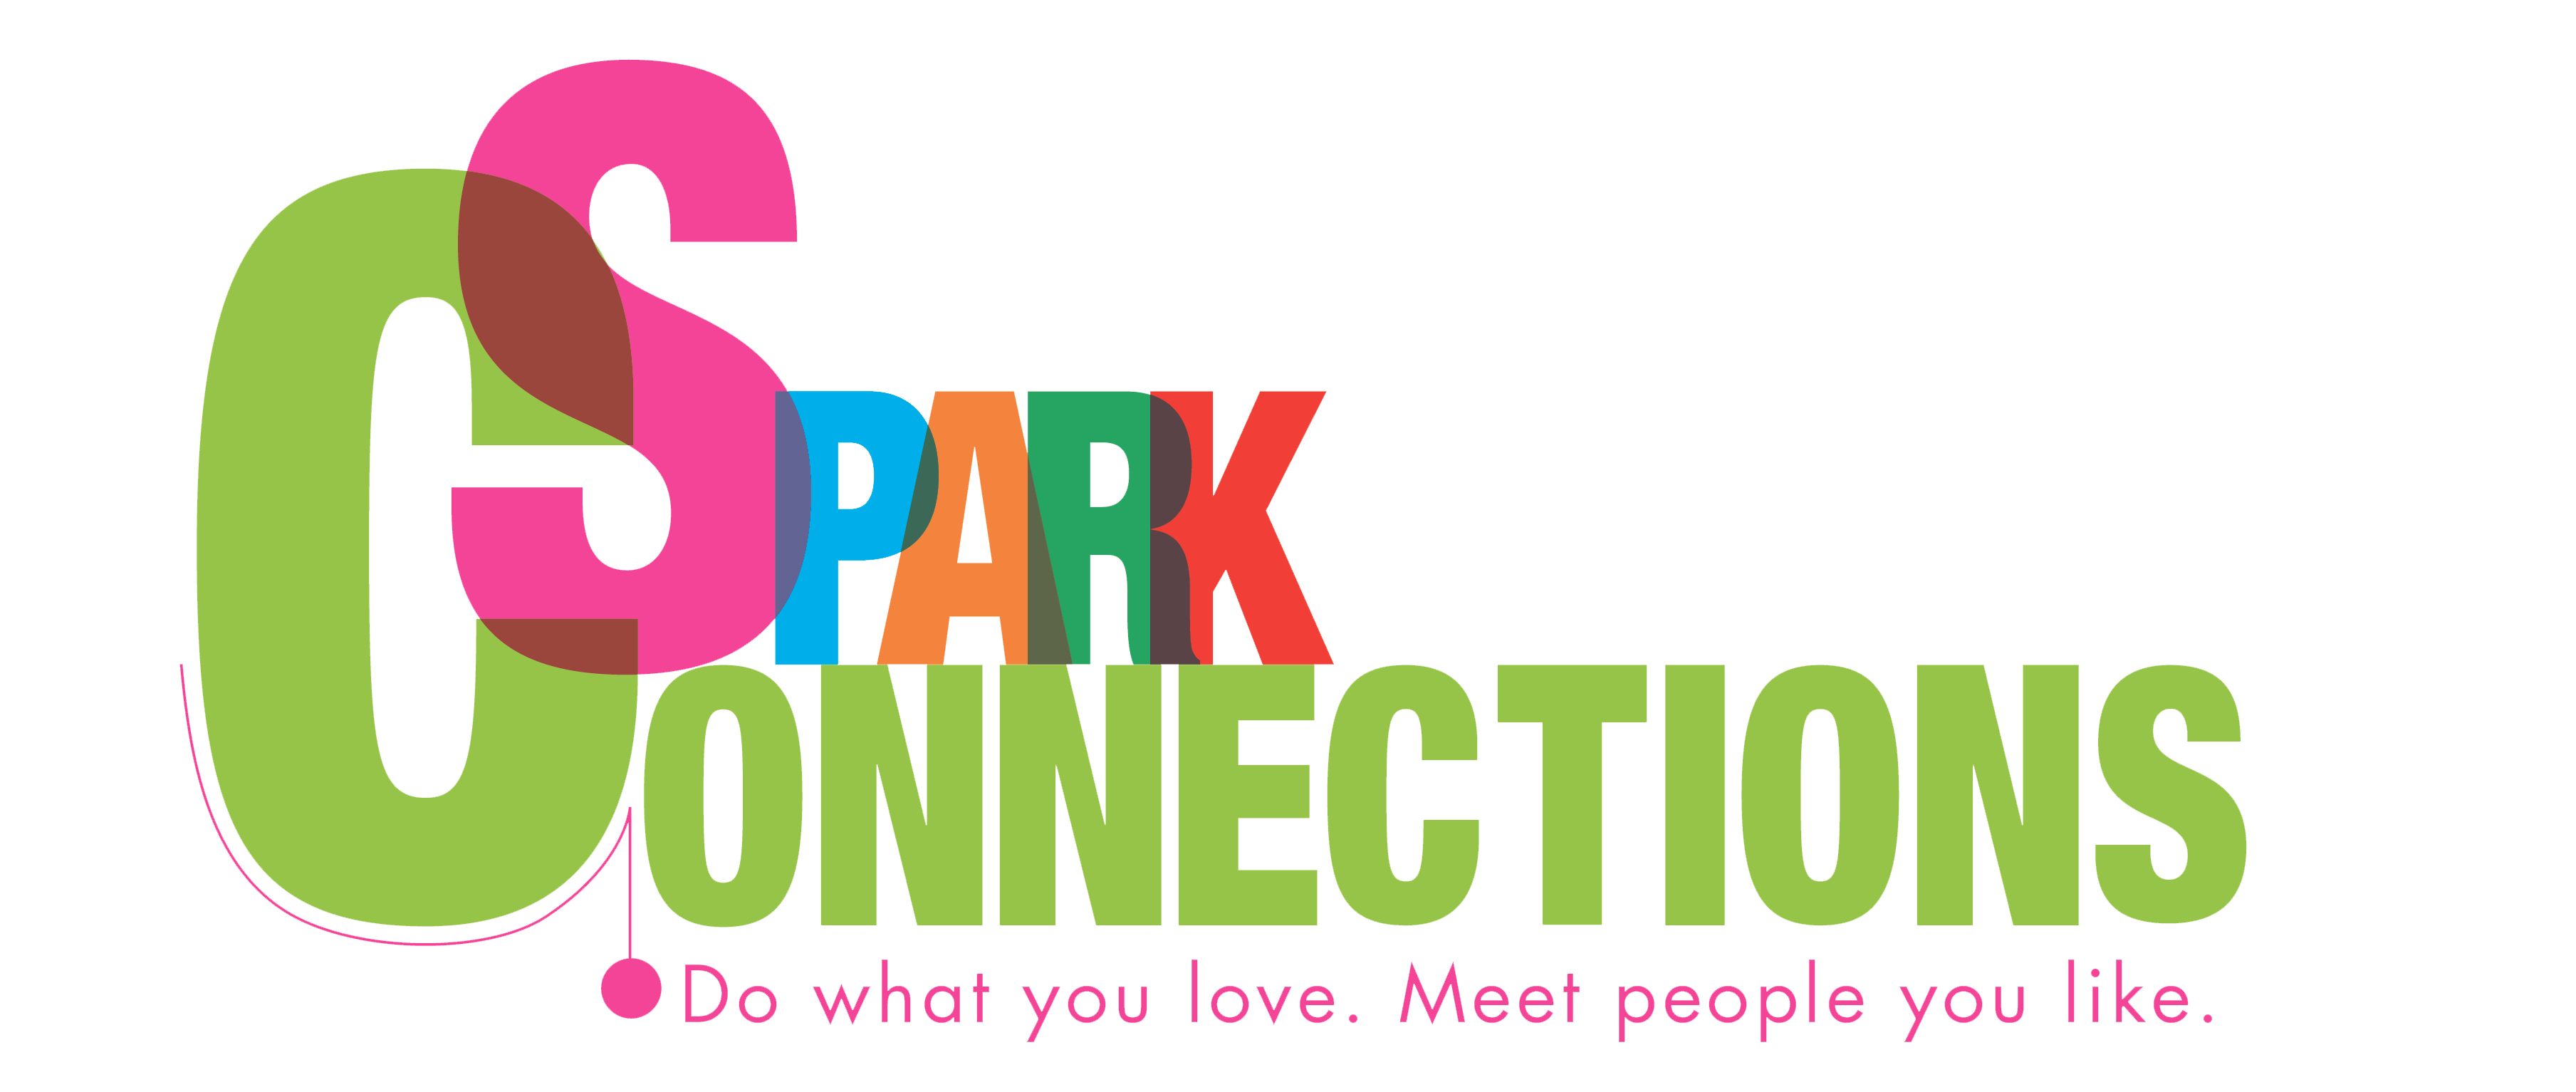 Spark Connection Logo